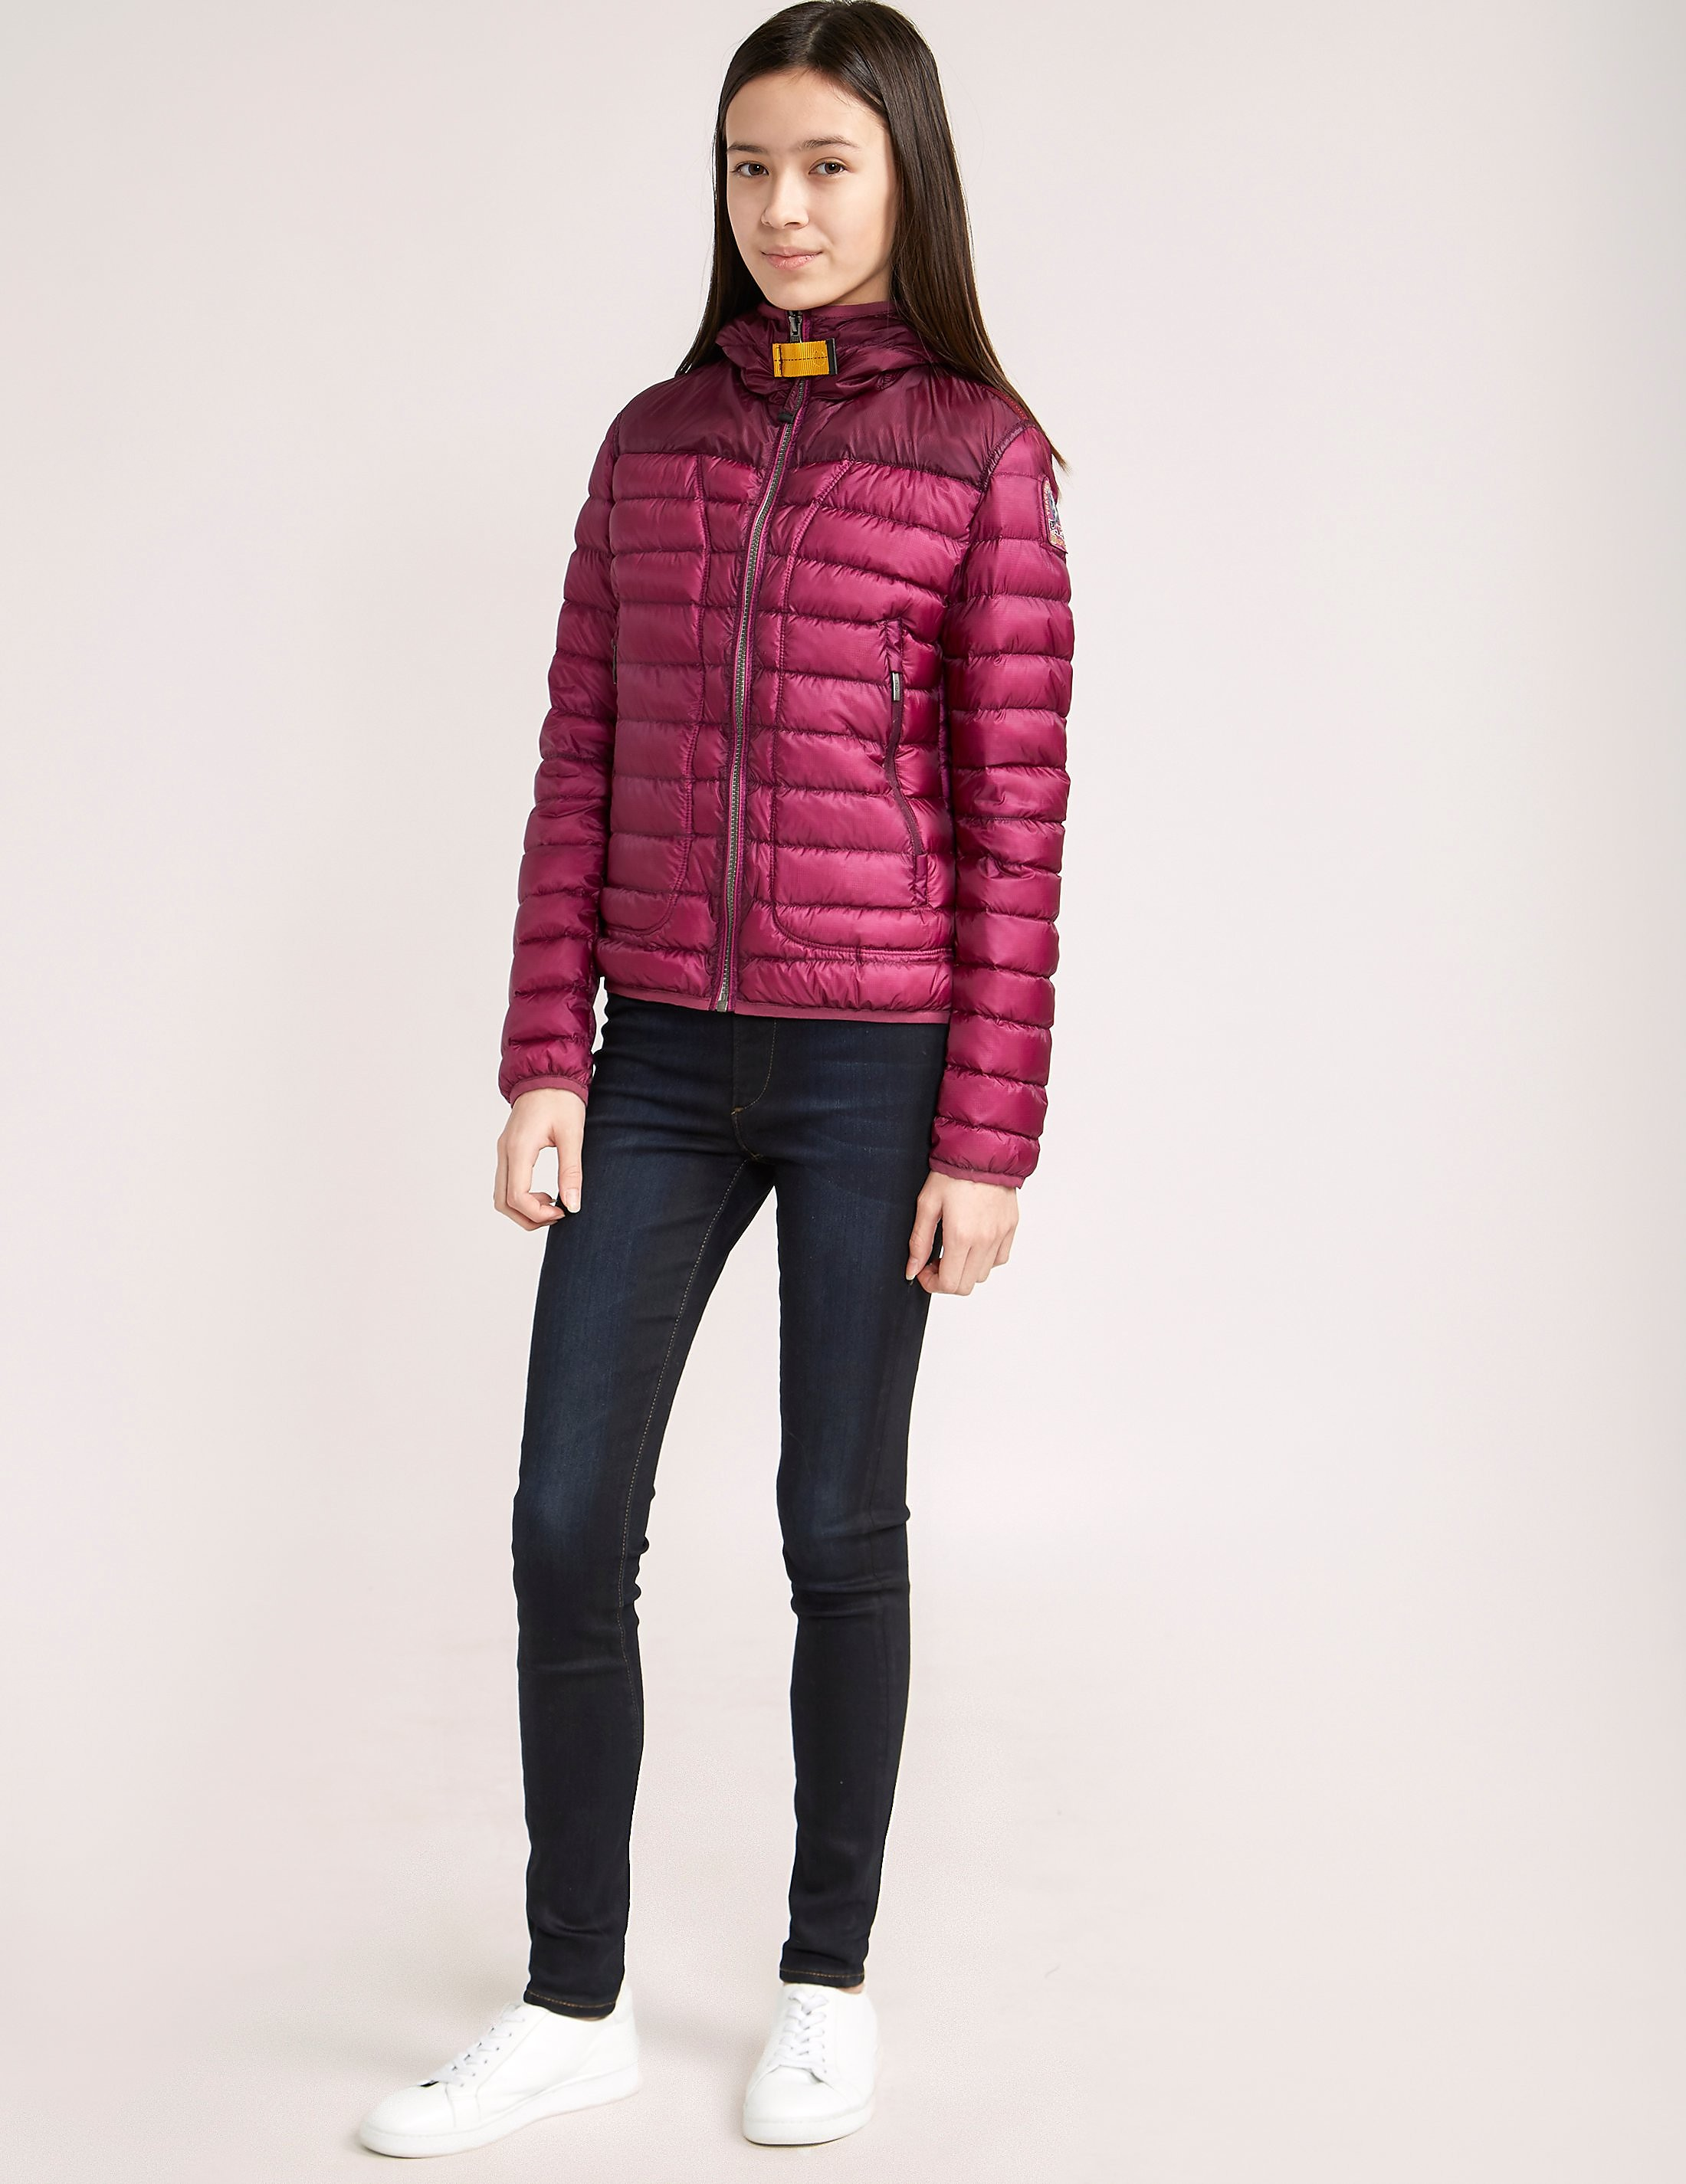 Parajumpers Rose Jacket